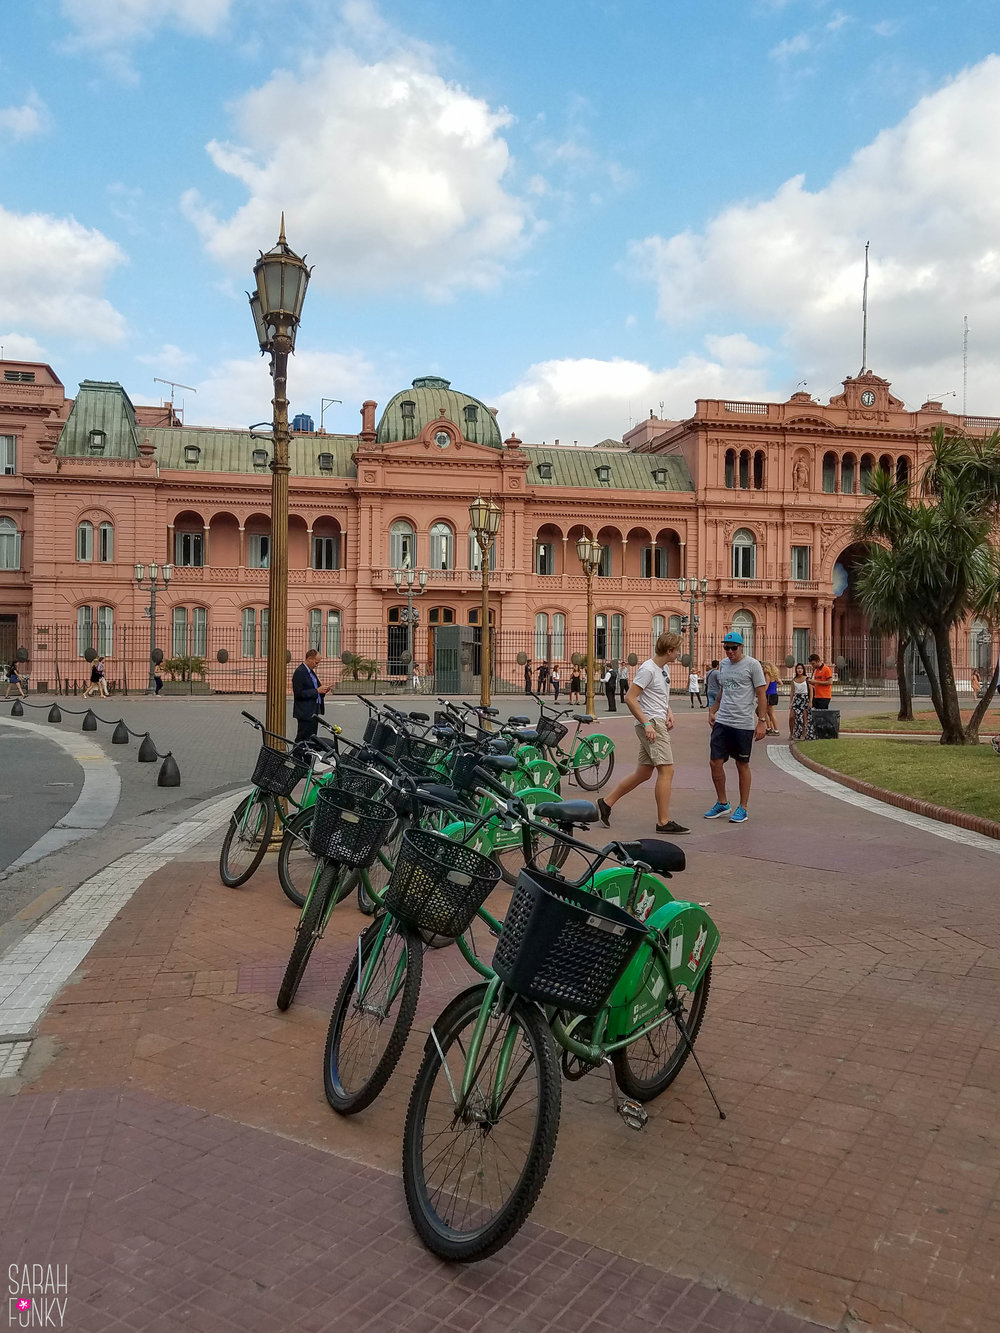 Bikes await as we sit in the grass gazing at the Casa Rosada